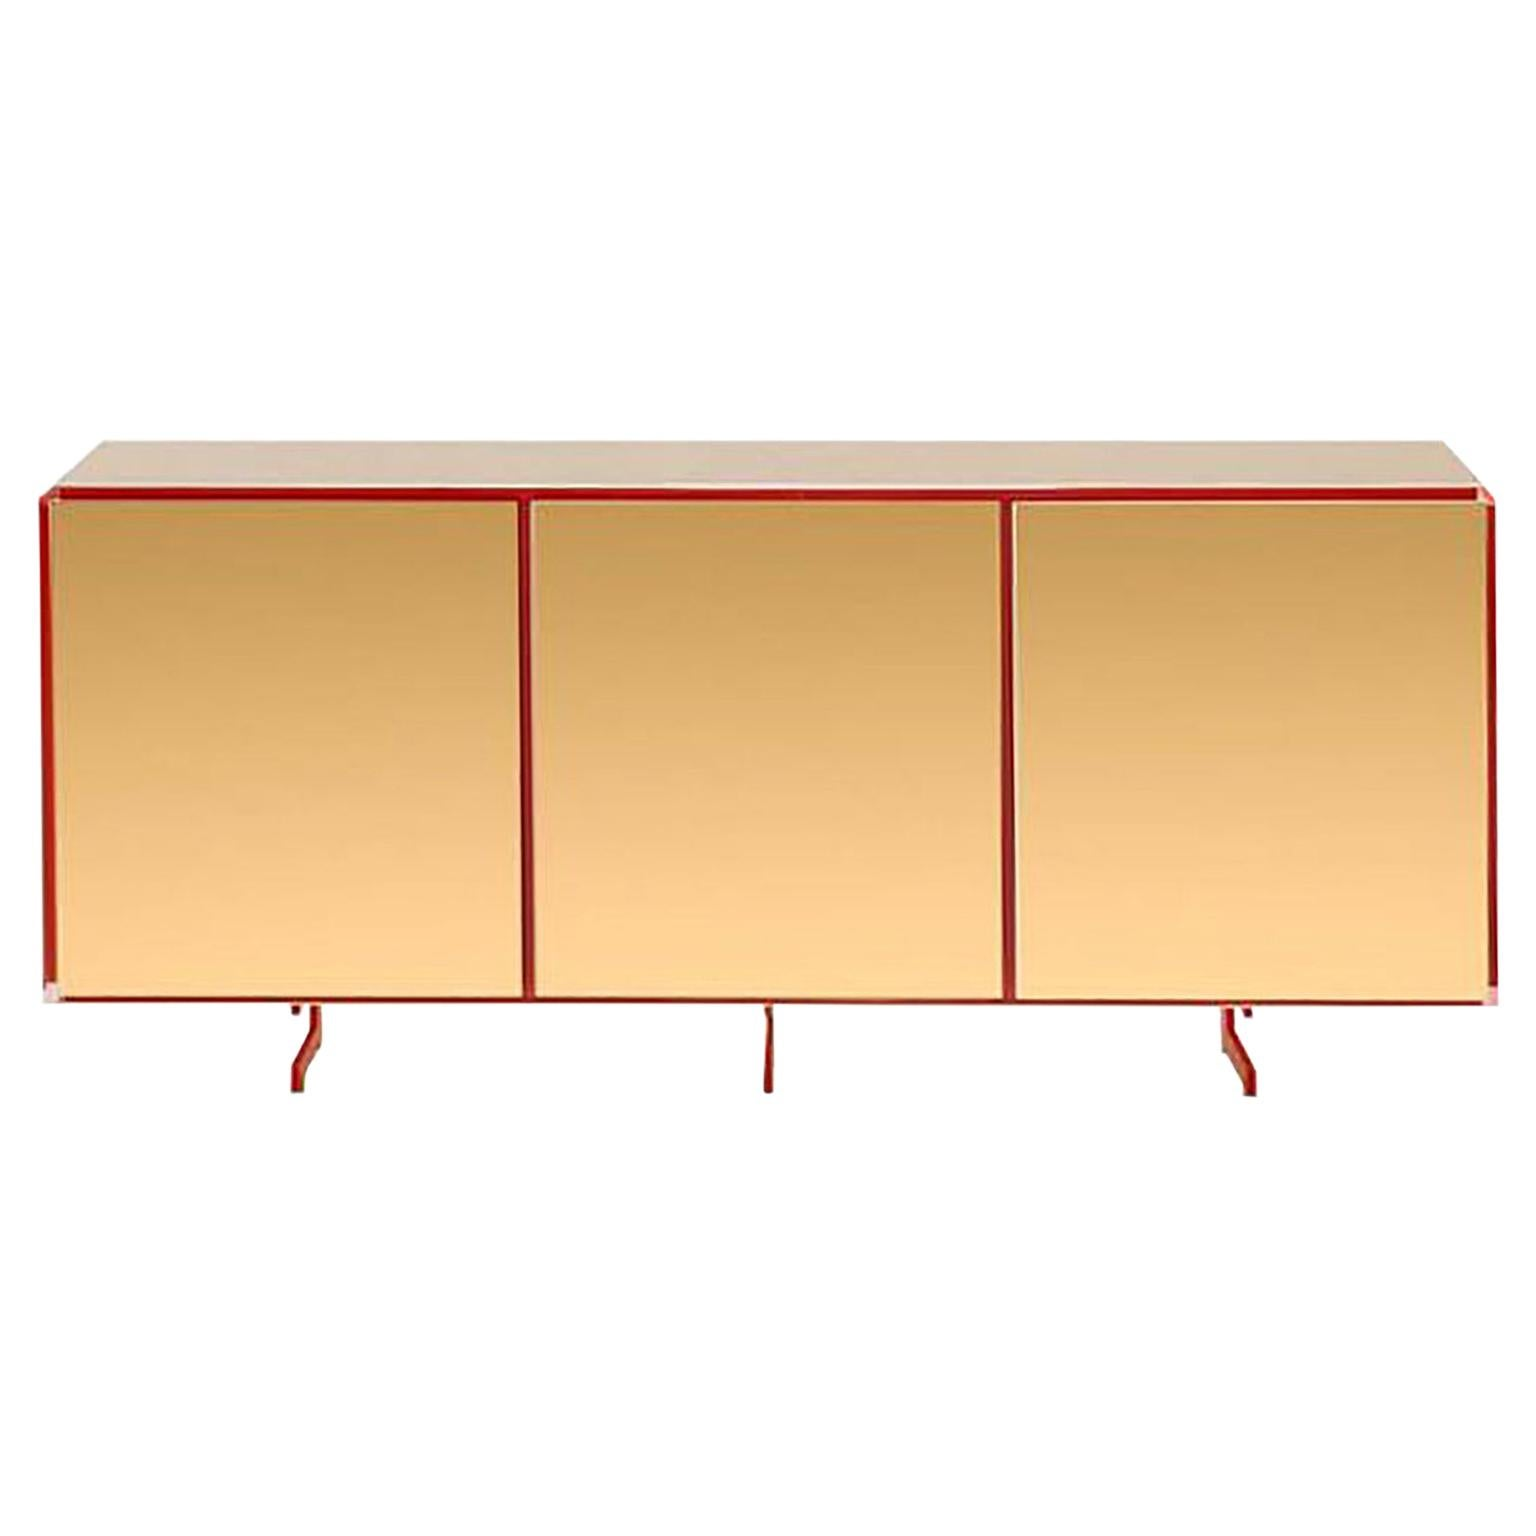 Gold Contemporary Three Doors Sideboard, 24-Karat Polished Gold-Plated